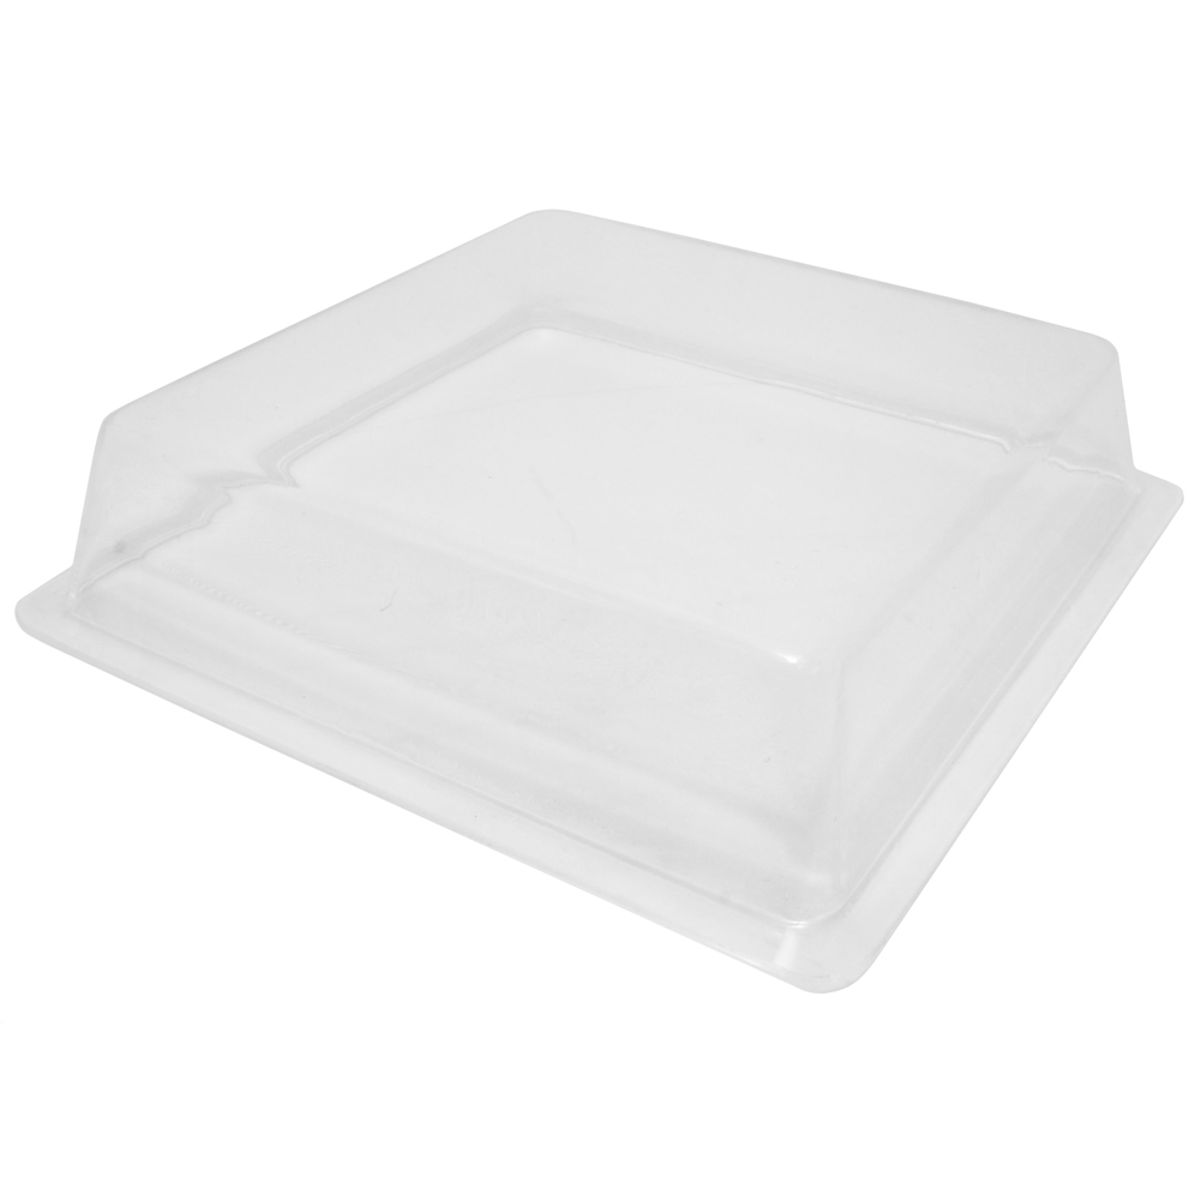 PERSPEX ROOFLIGHT 12 X 12 CLEAR